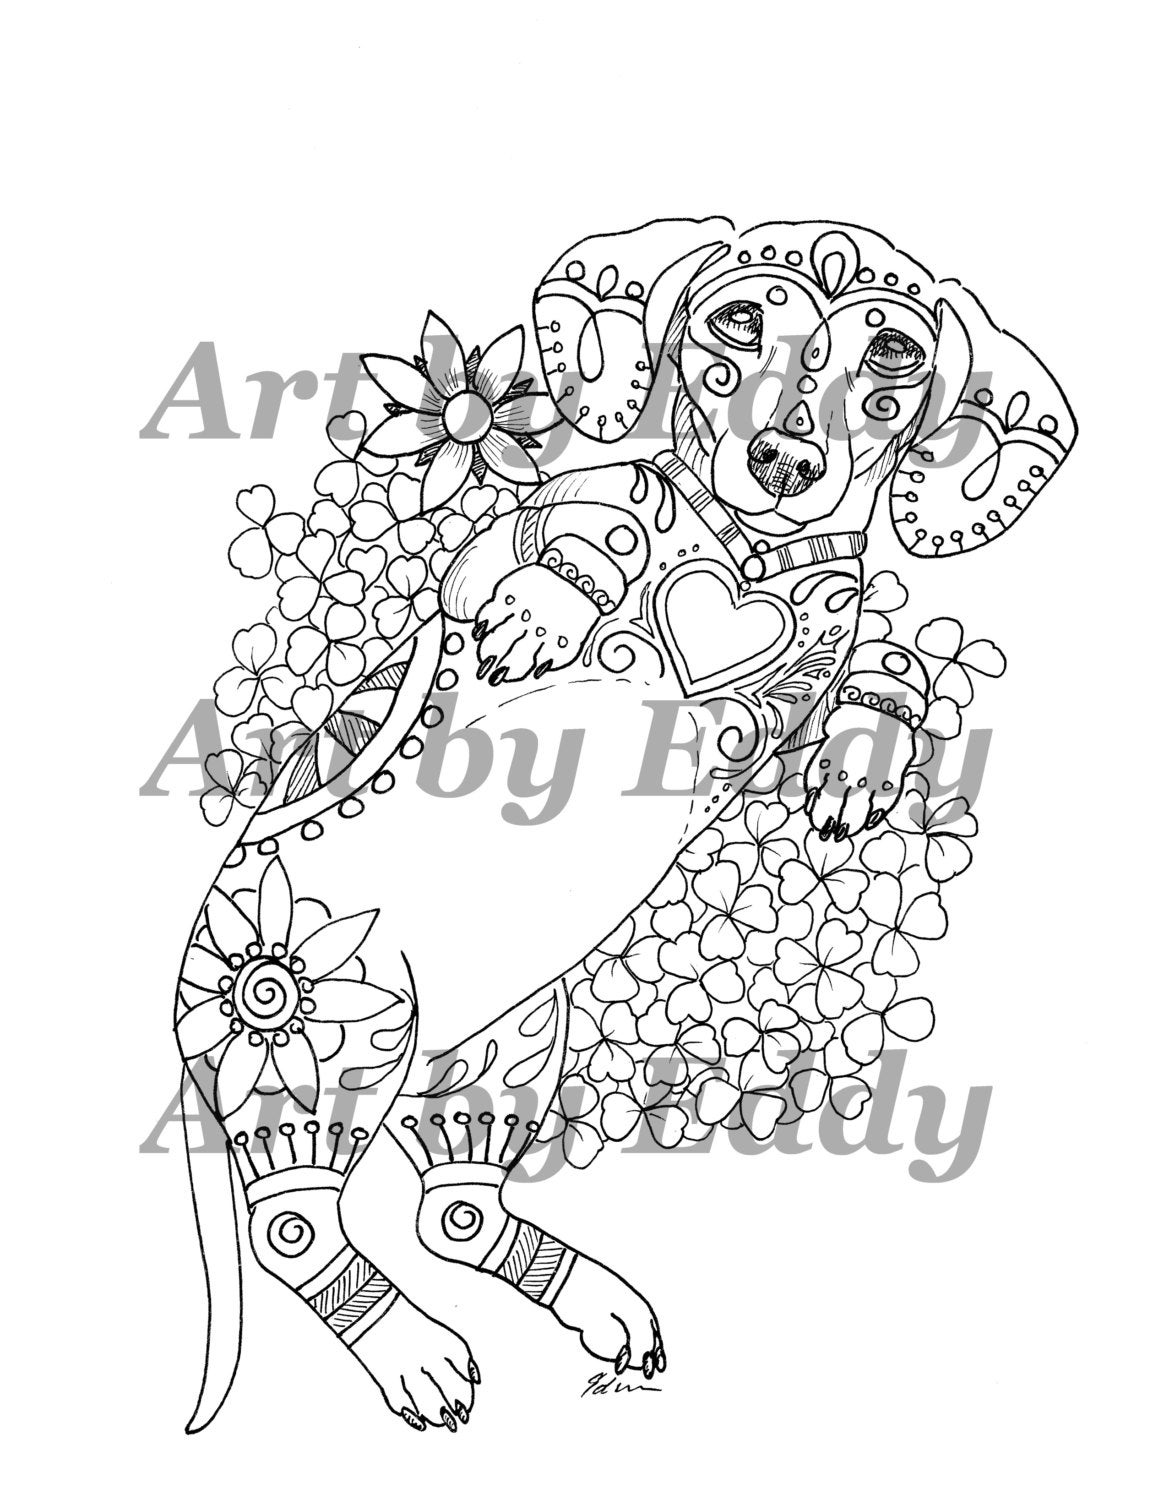 daschunds coloring pages   Art of Dachshund Single Coloring Page Rub my Belly